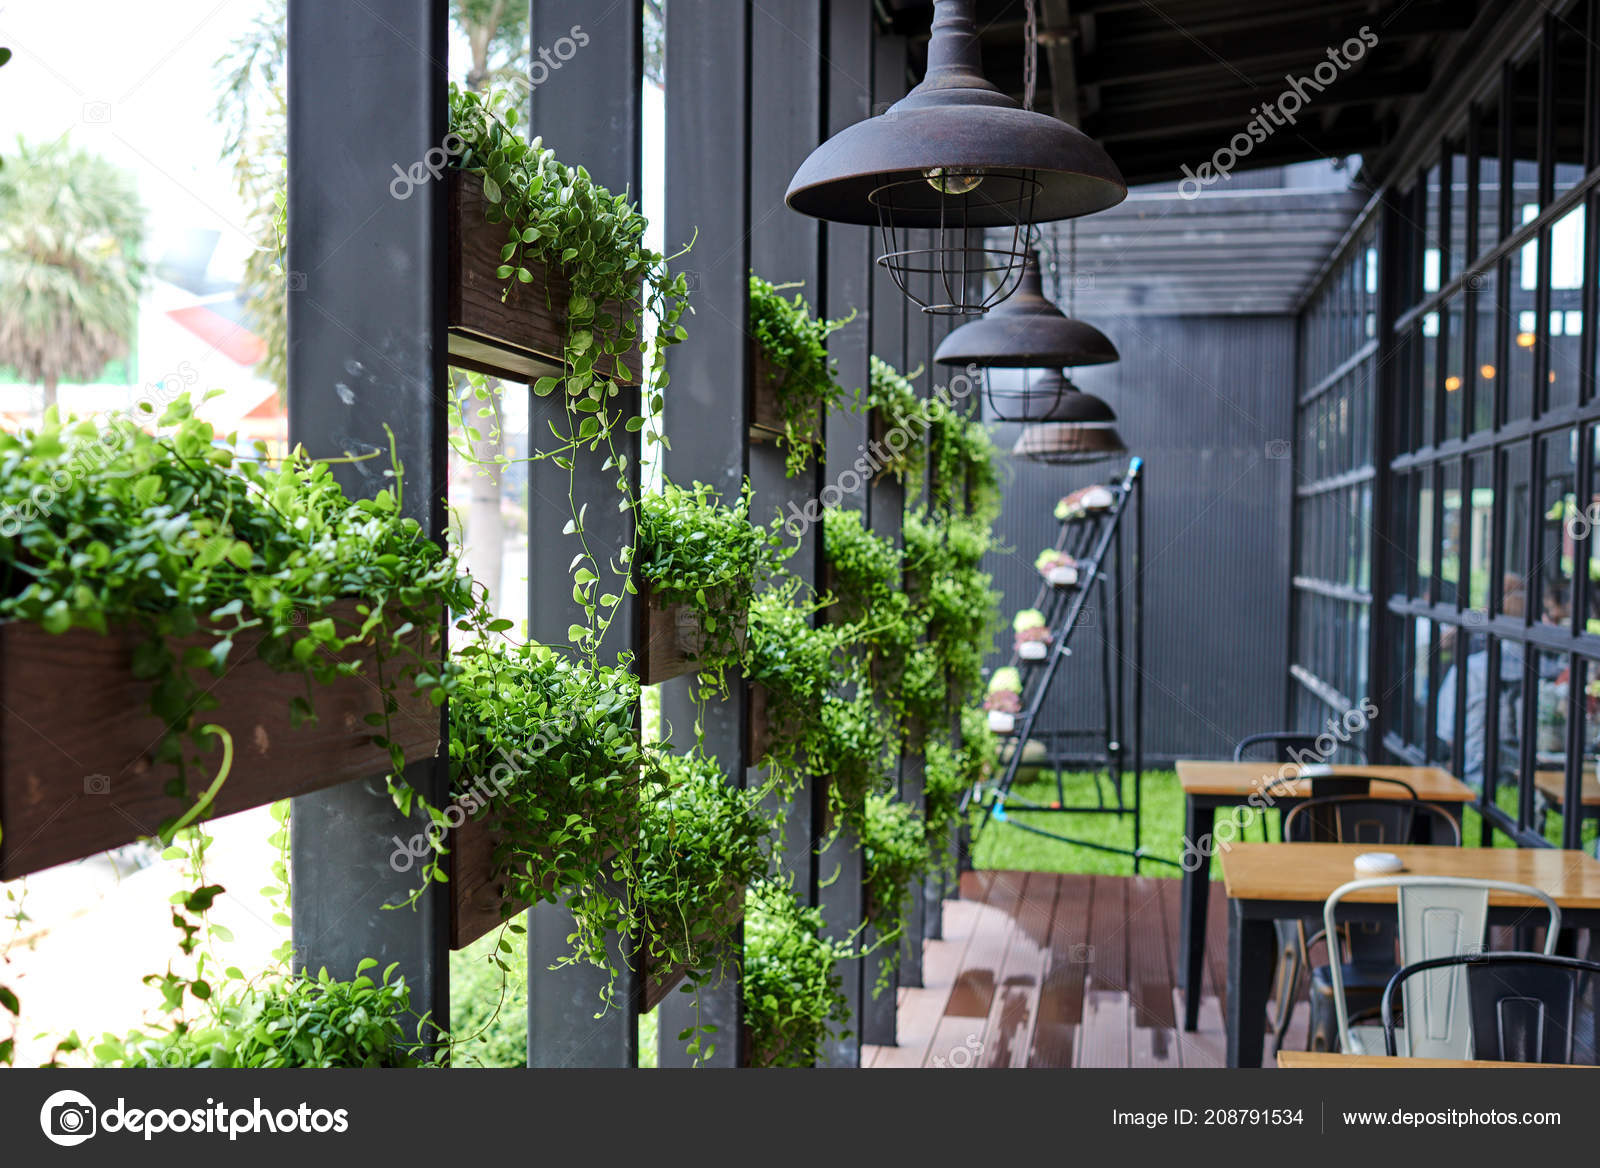 Eco Architecture Green Cafe Hydroponic Plants Facade Ecology Green